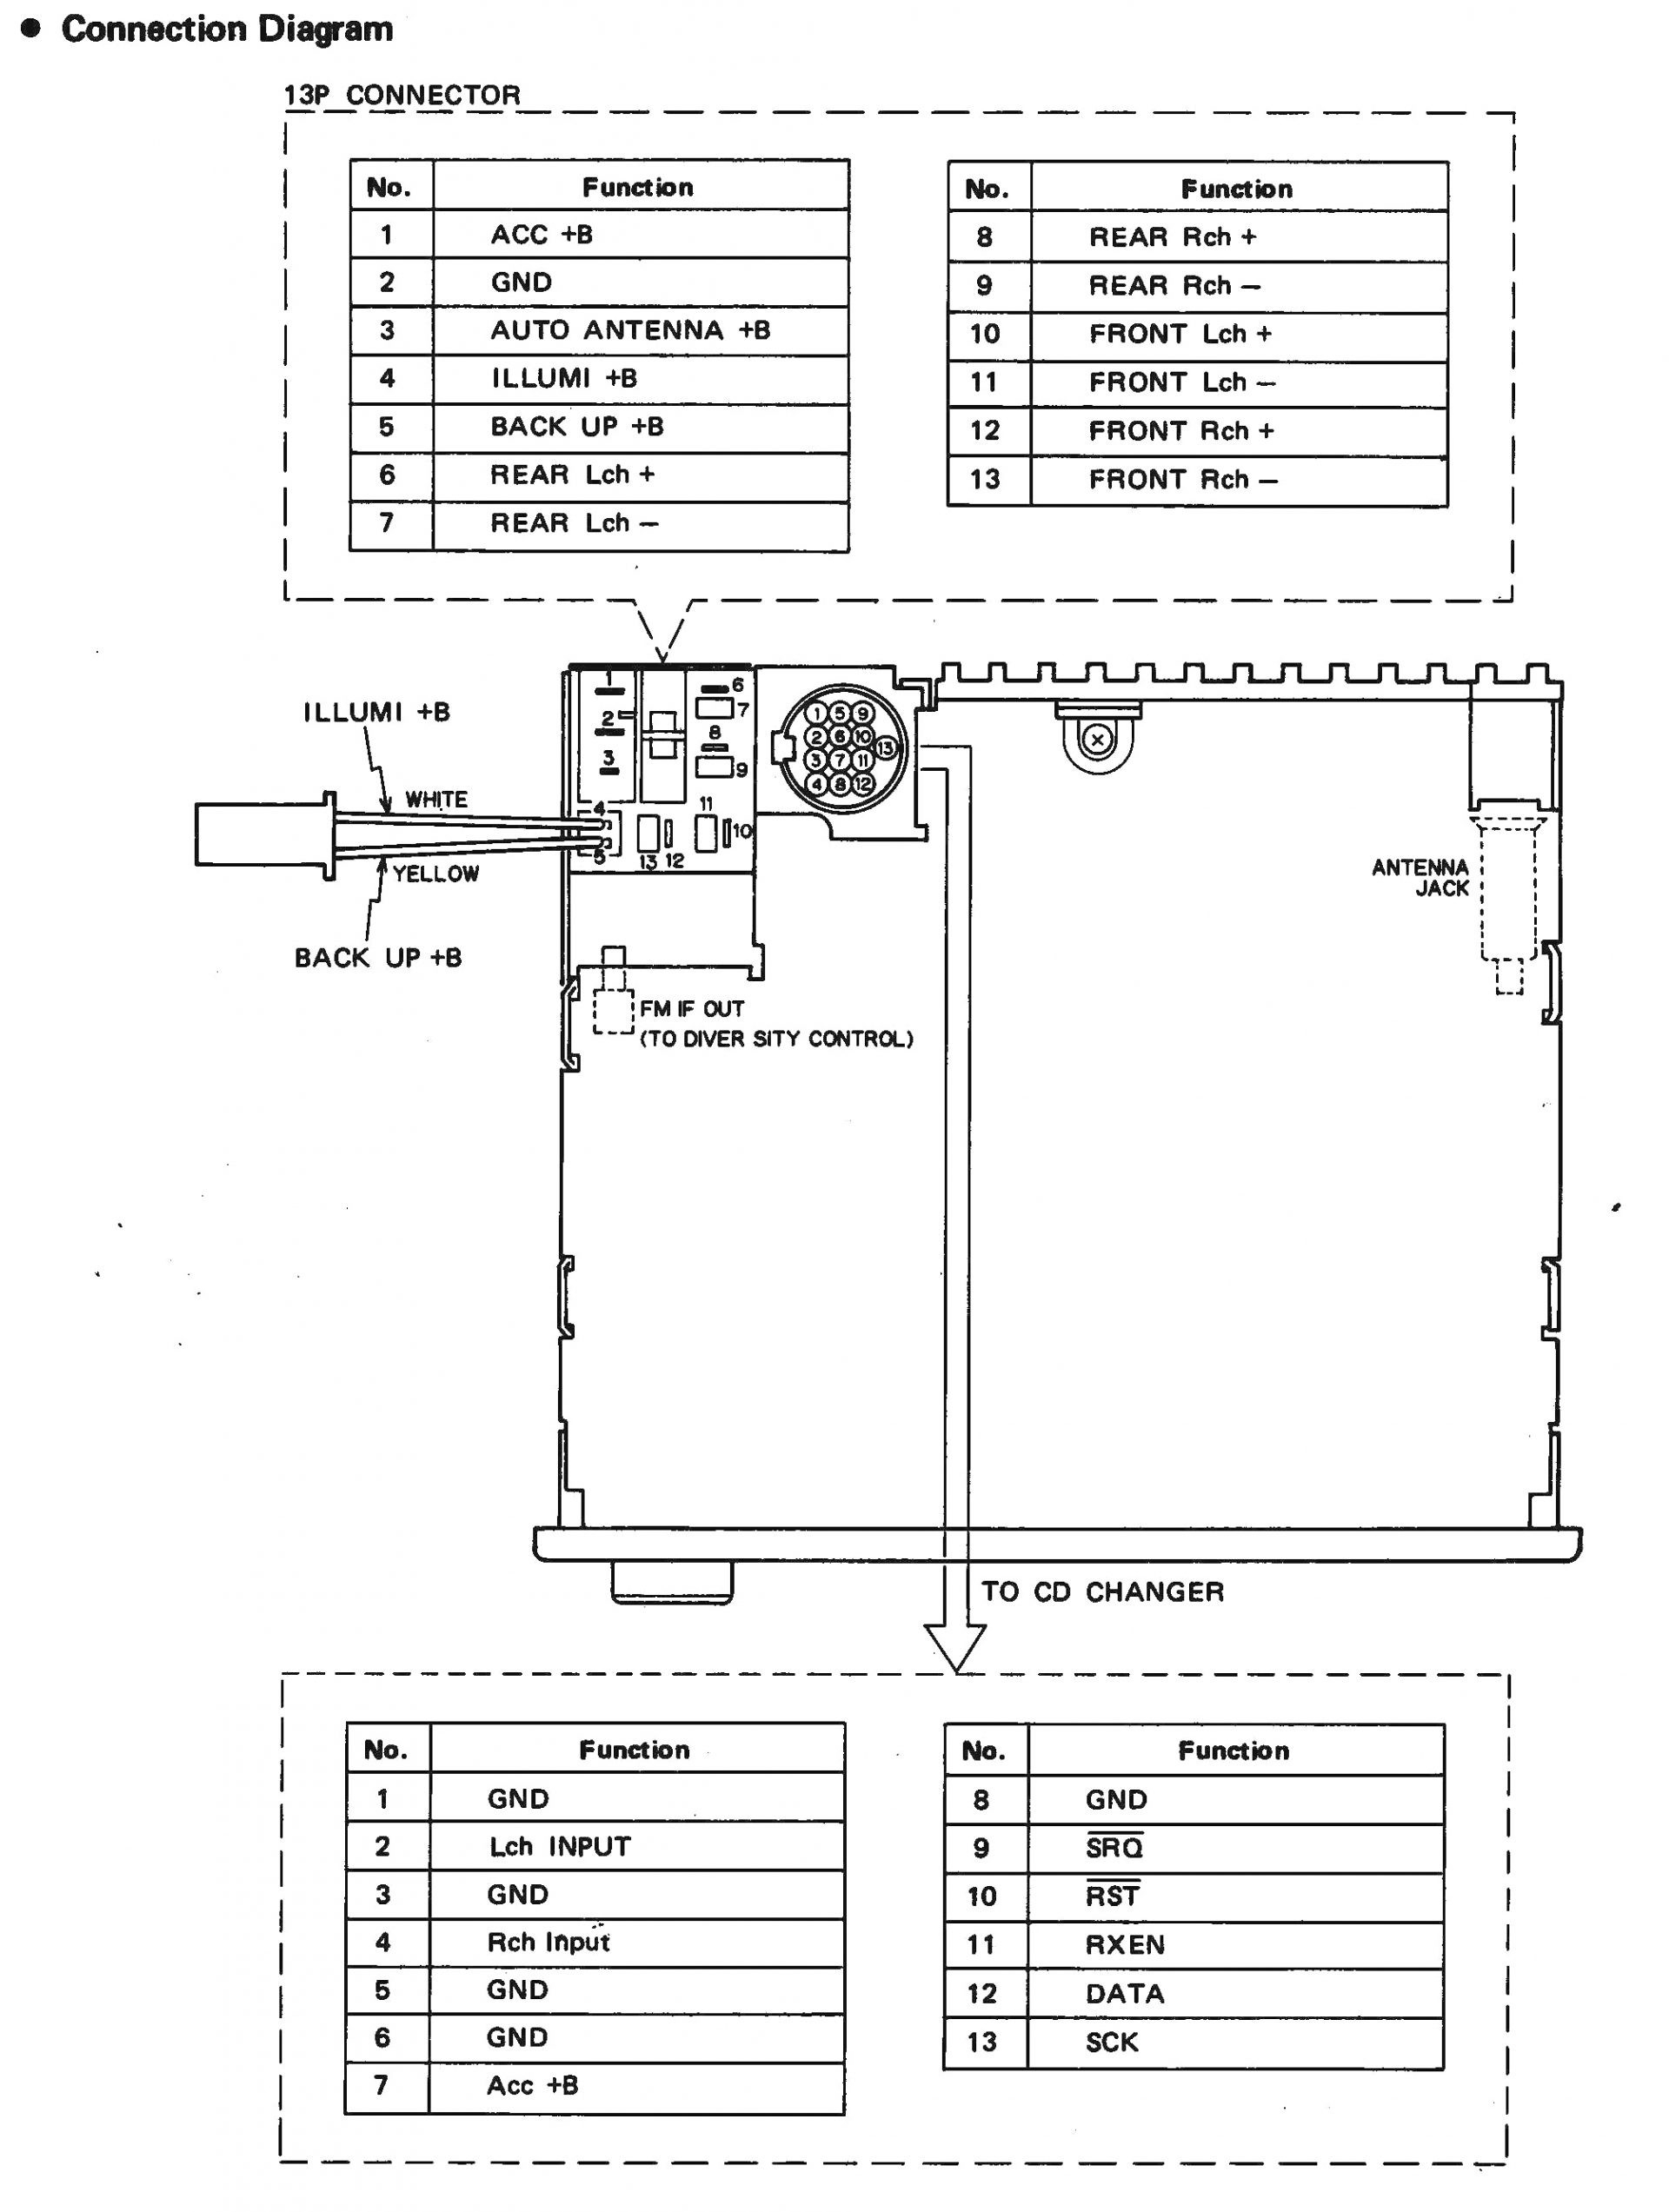 Pioneer Avh P2300dvd Wiring Harness Diagram - Pioneer Avh P2300dvd Wiring  Diagram Inspirational Wiring Harness for